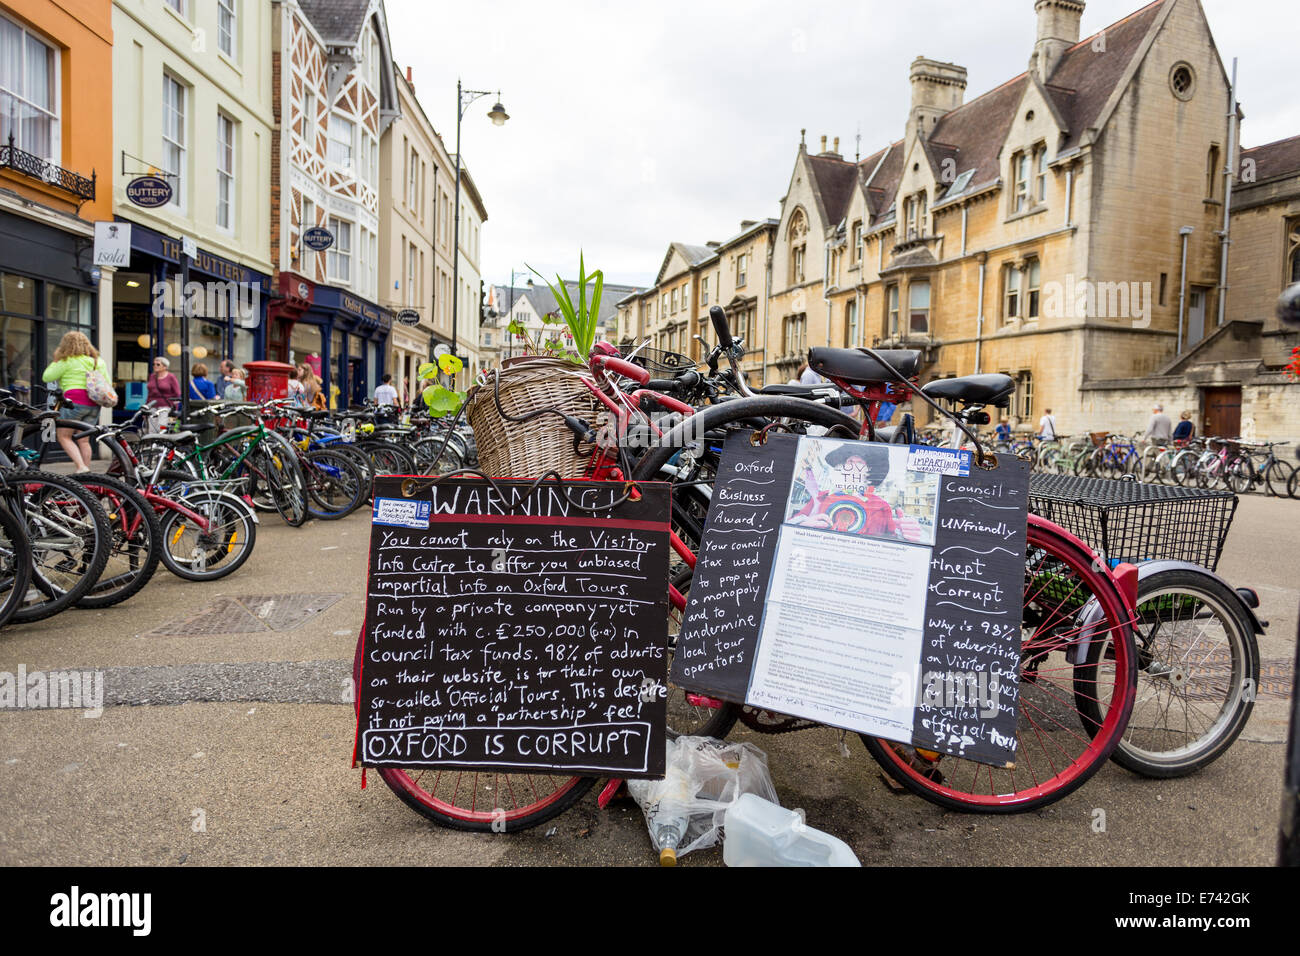 Oxford tour company, Mad Hatter Tours, mounts a protest against Oxford City Council on a bicycle - Stock Image